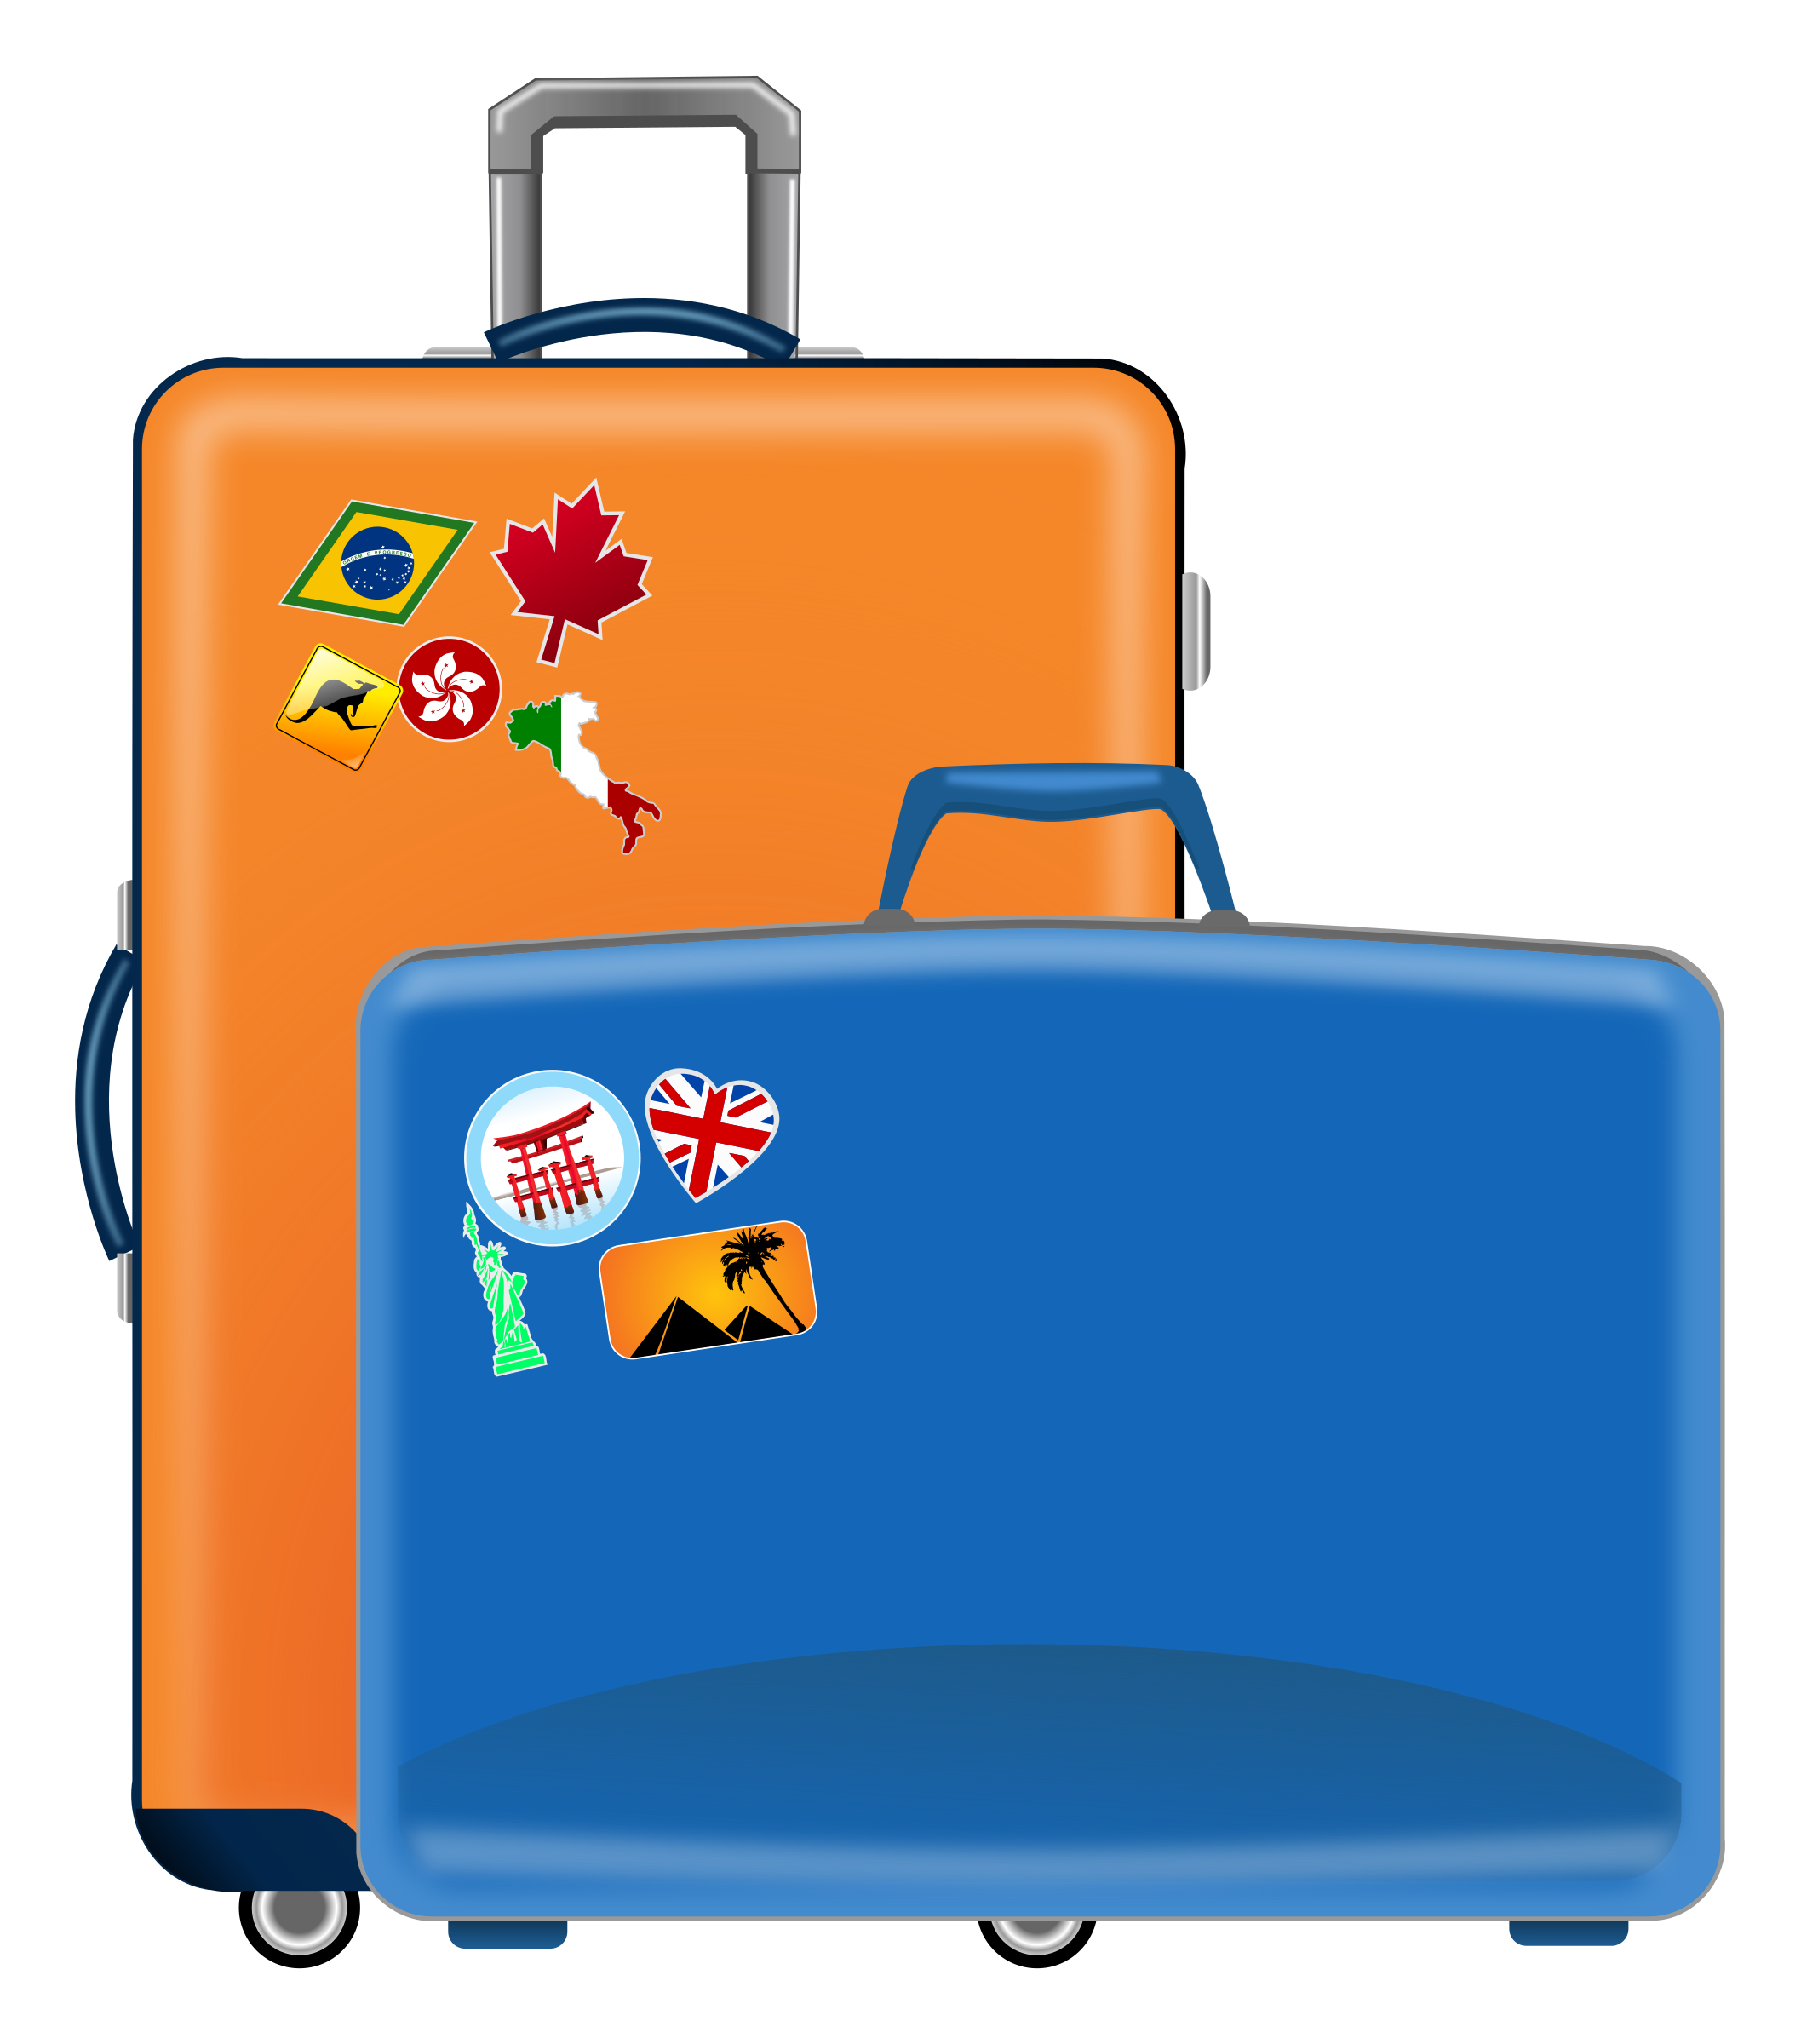 Suitcases icons png free. Luggage clipart holiday